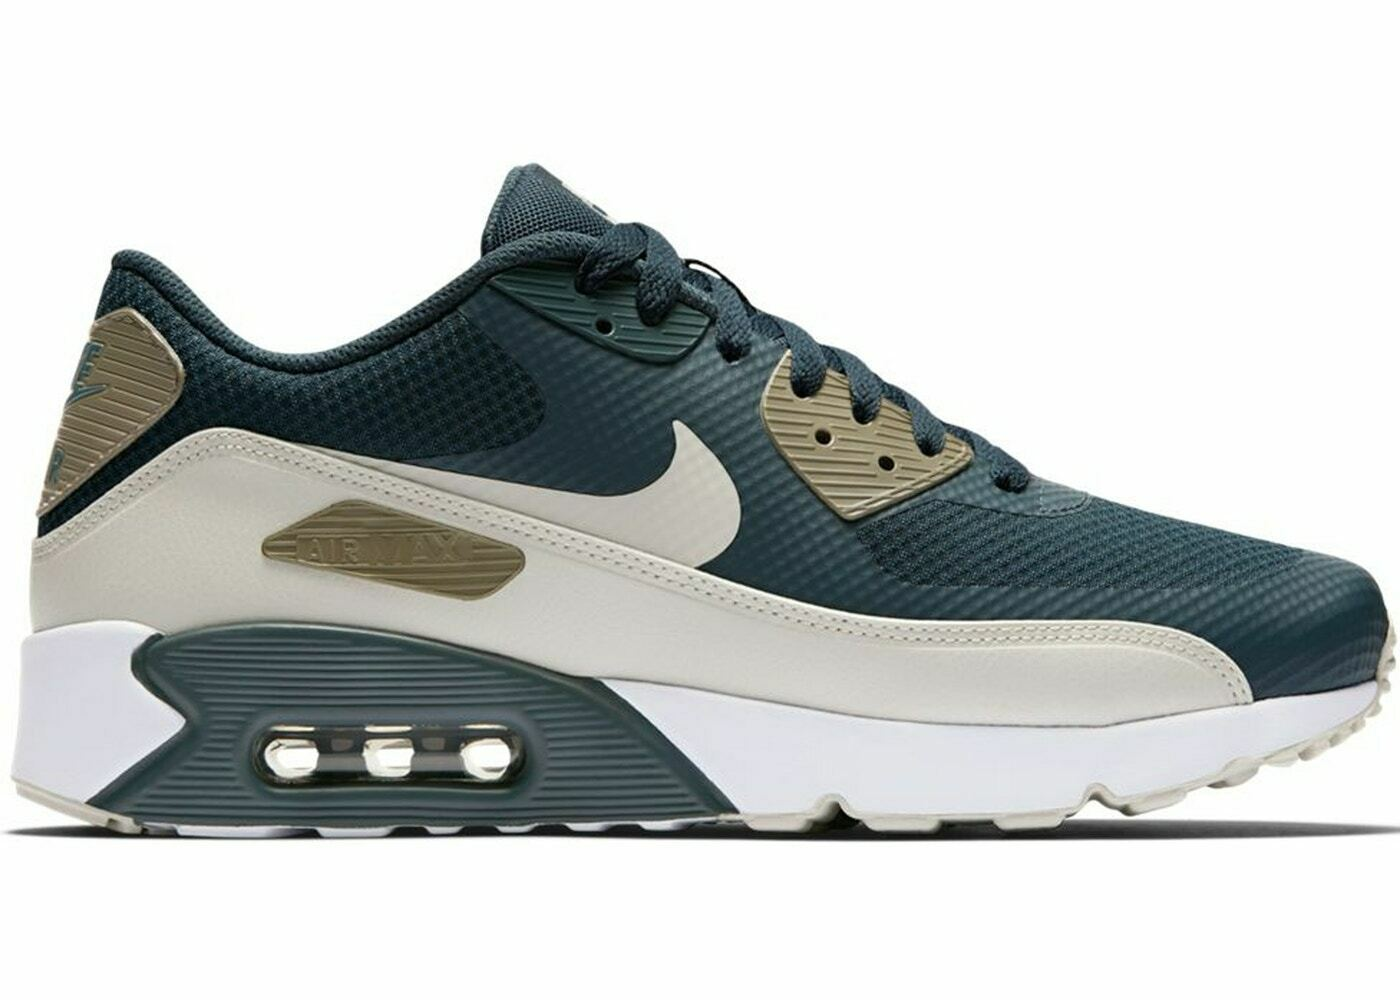 AUTHENTIC NIKE Air Max 90 Ultra 2.0 bluee Fox Mushroom White 875695 401 men size